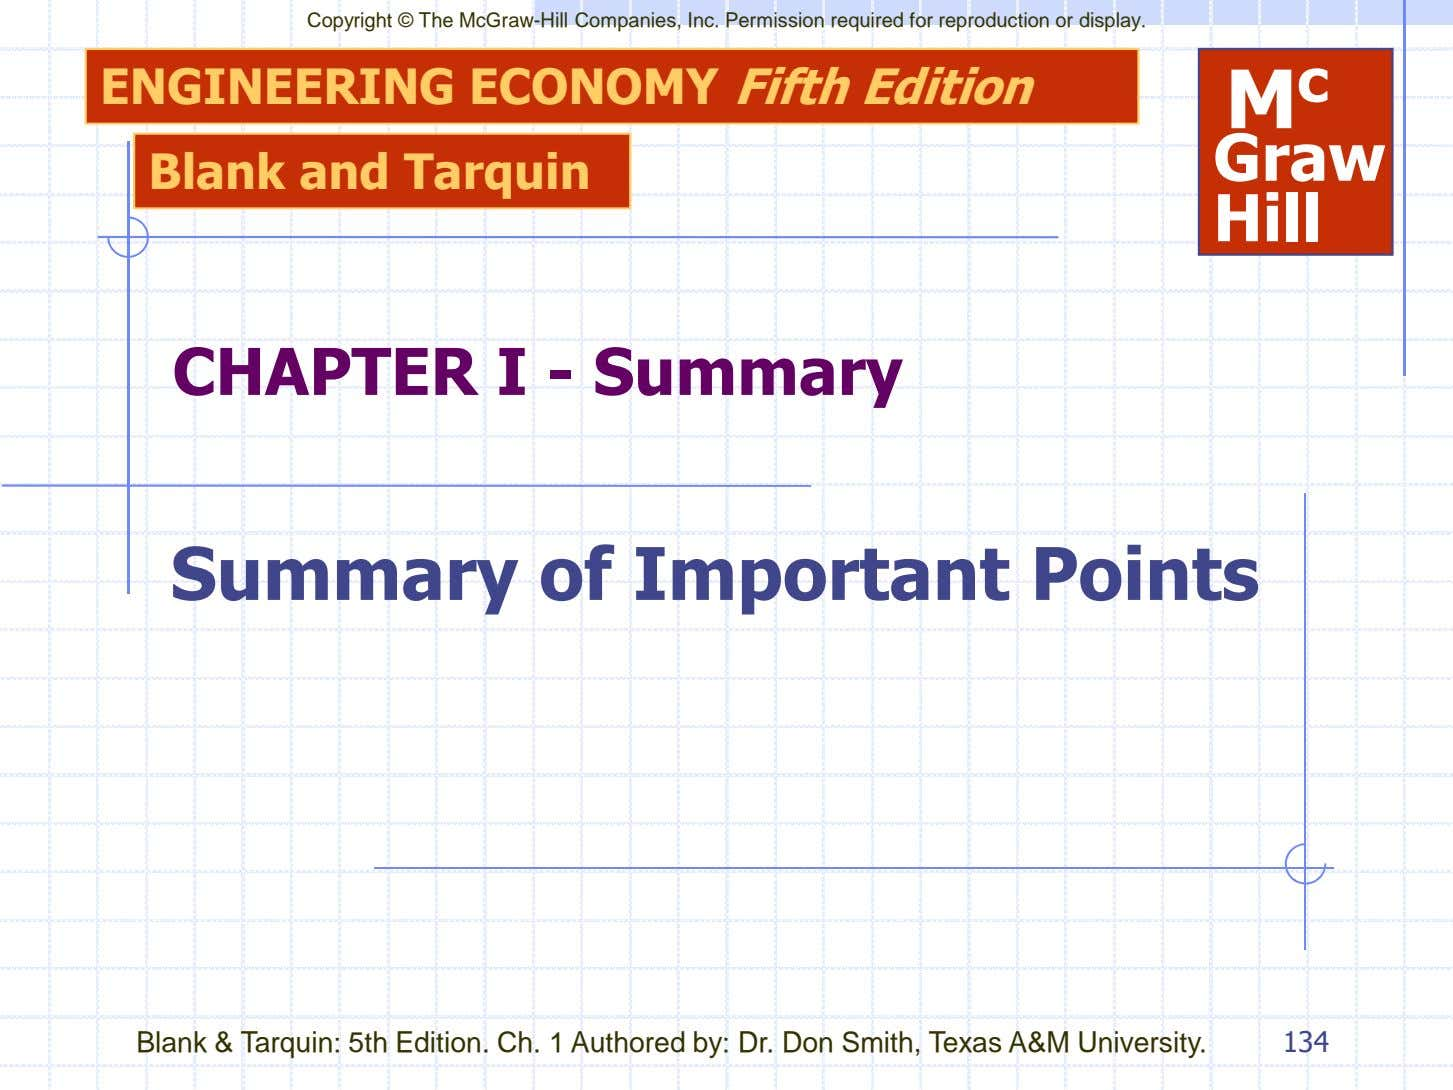 Copyright © The McGraw-Hill Companies, Inc. Permission required for reproduction or display. ENGINEERING ECONOMY Fifth